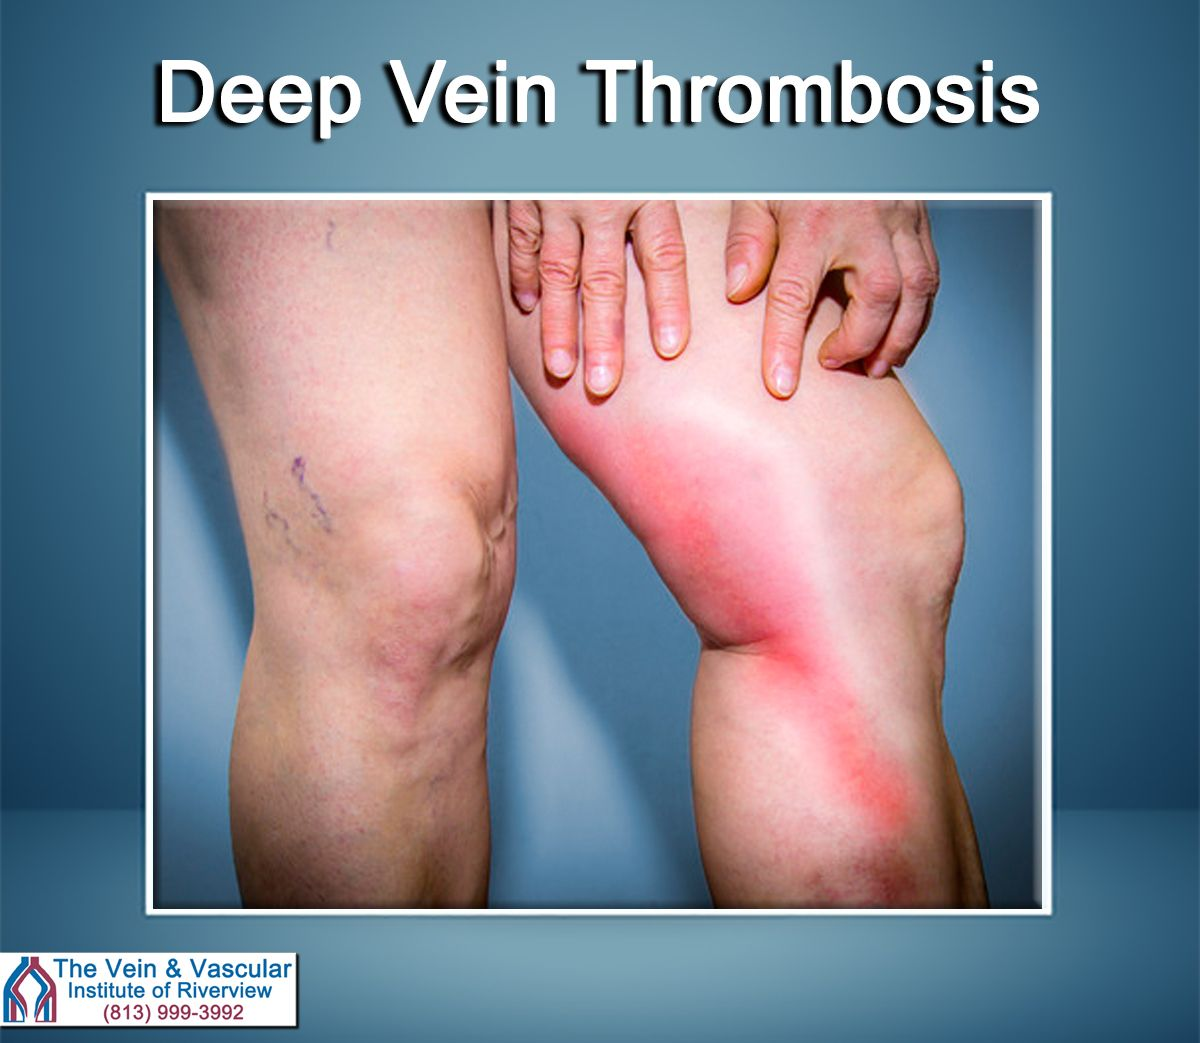 To Diagnose A Dvt A Vascular Ultrasound Would Be Needed